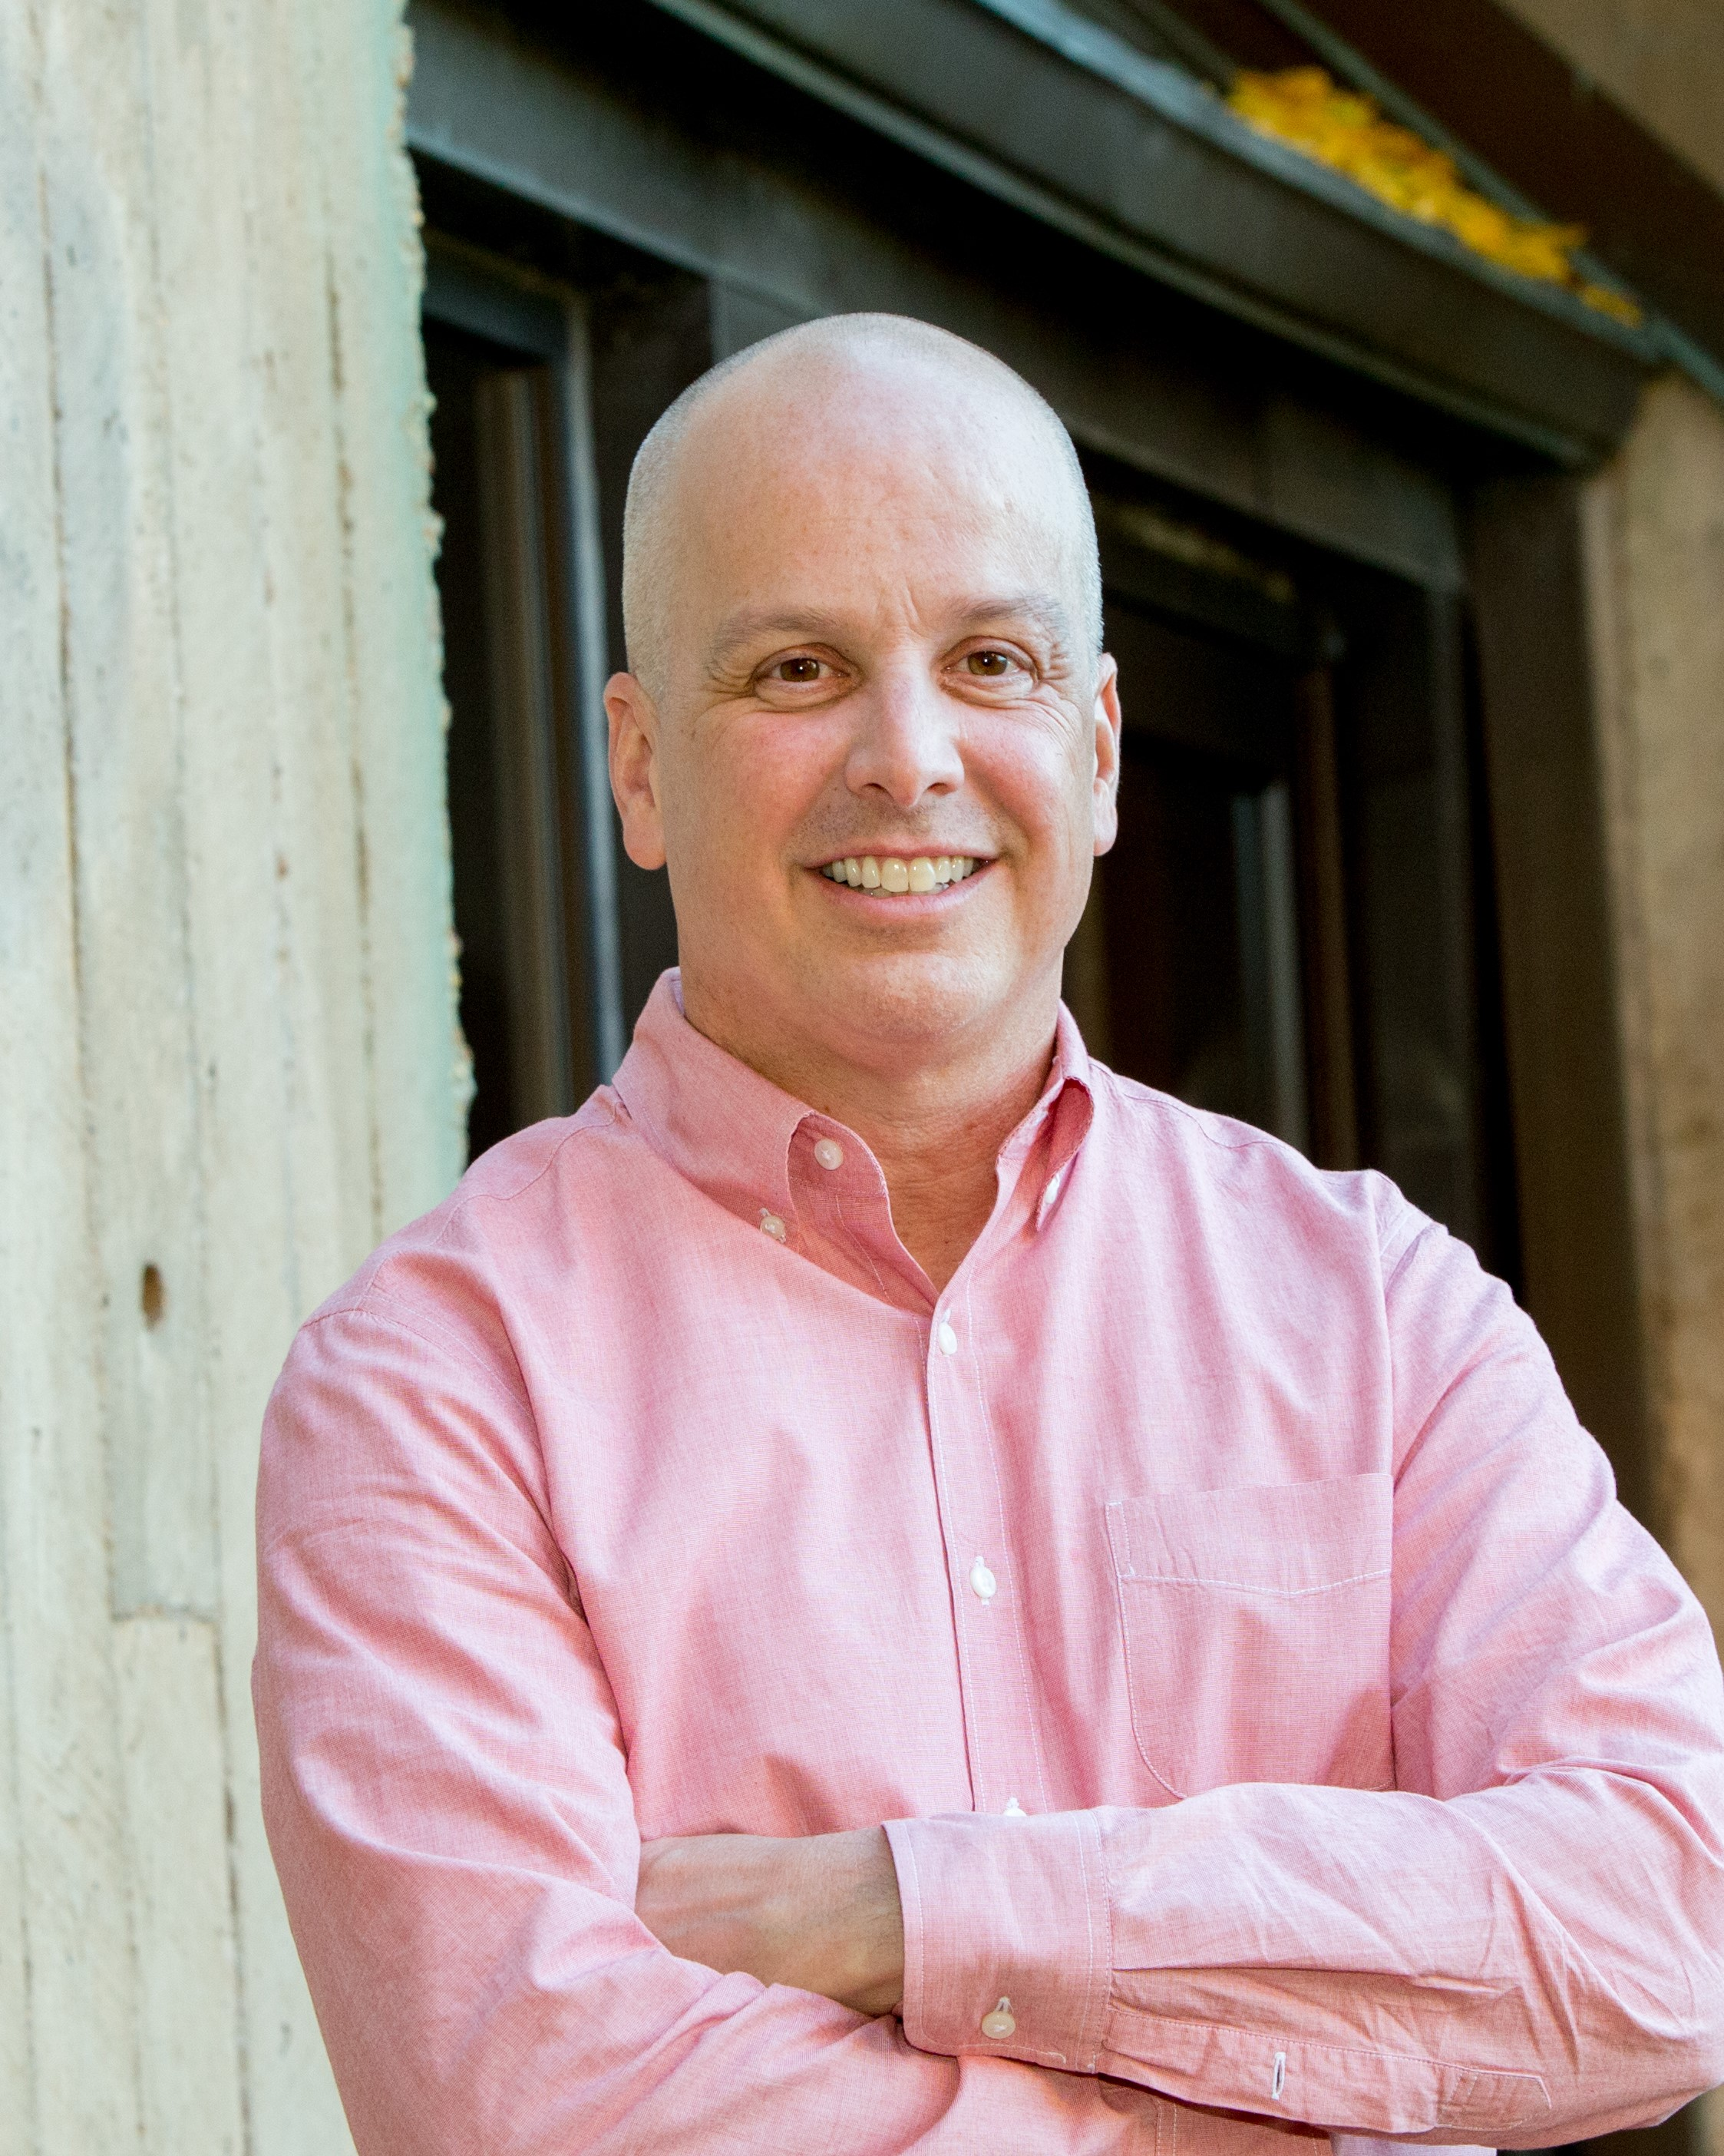 JimShaughnessy - Executive Vice President and COO